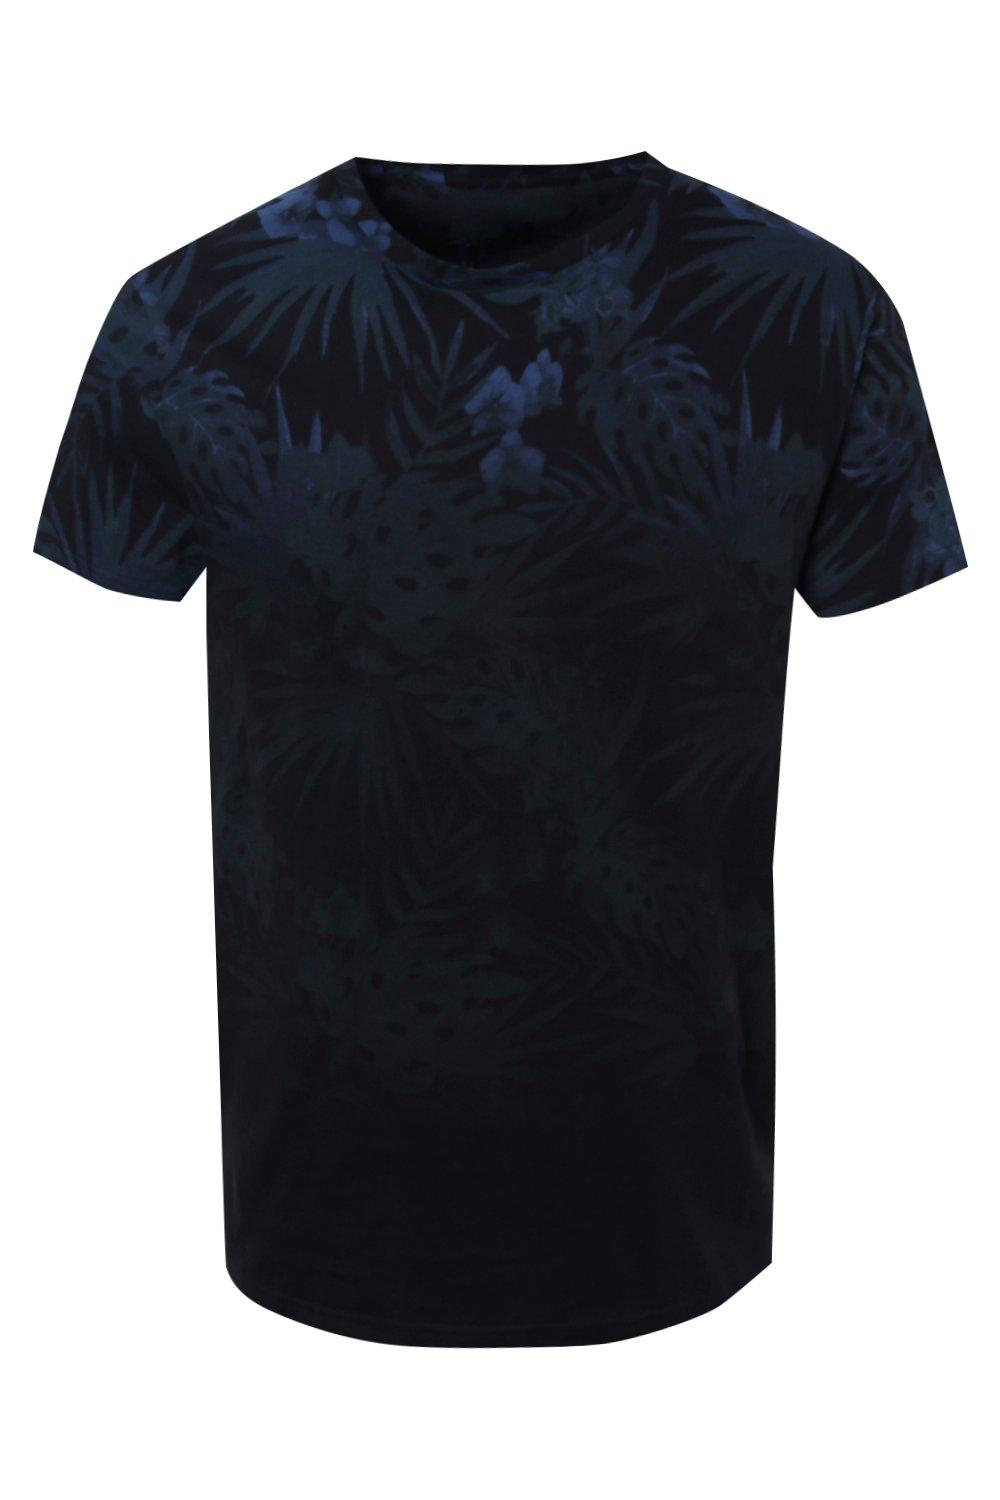 Boohoo-Mens-Faded-Palm-Sublimation-Print-T-Shirt